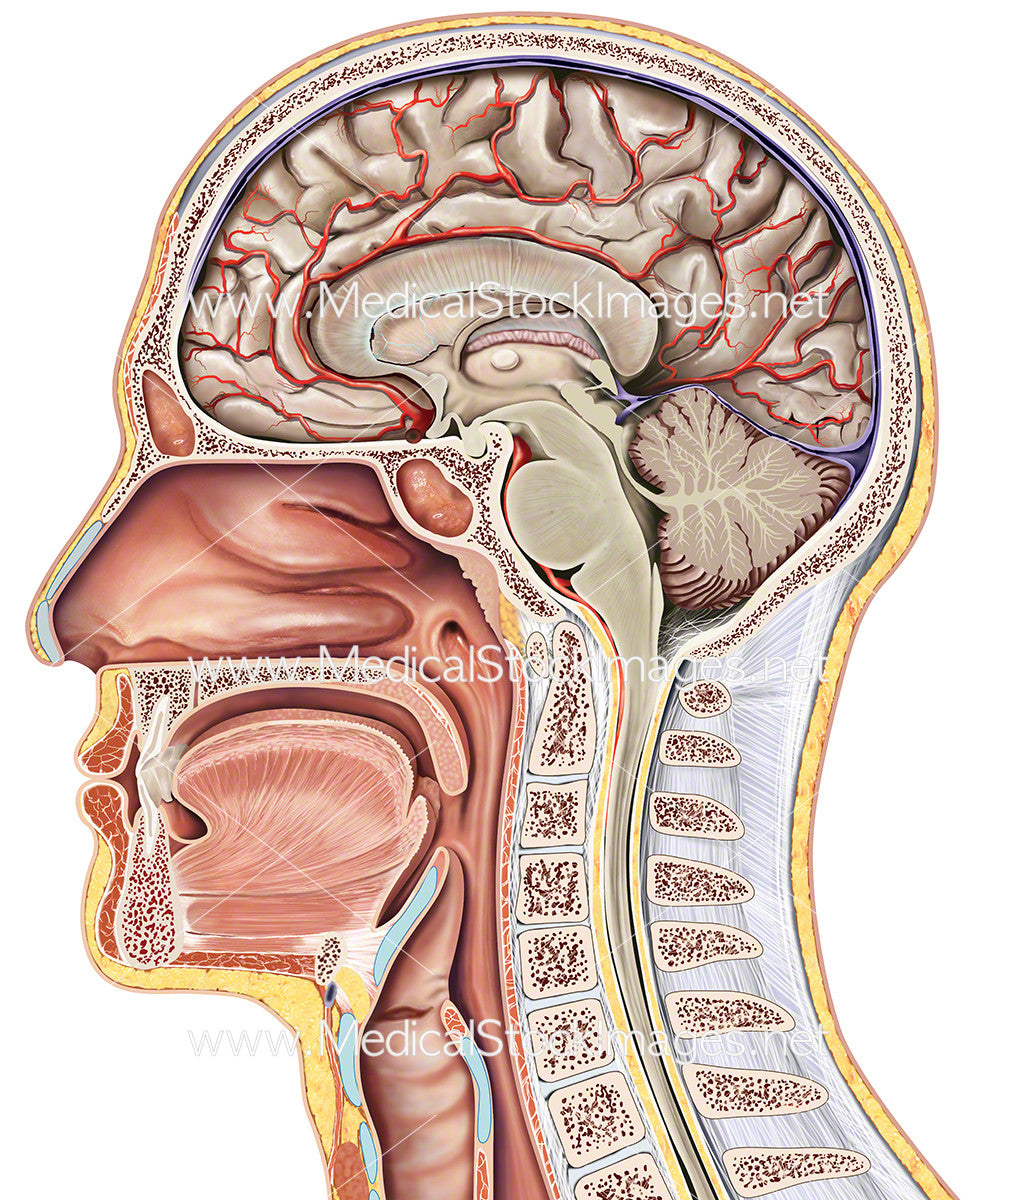 Midsagittal Section Of The Head Medical Stock Images Company